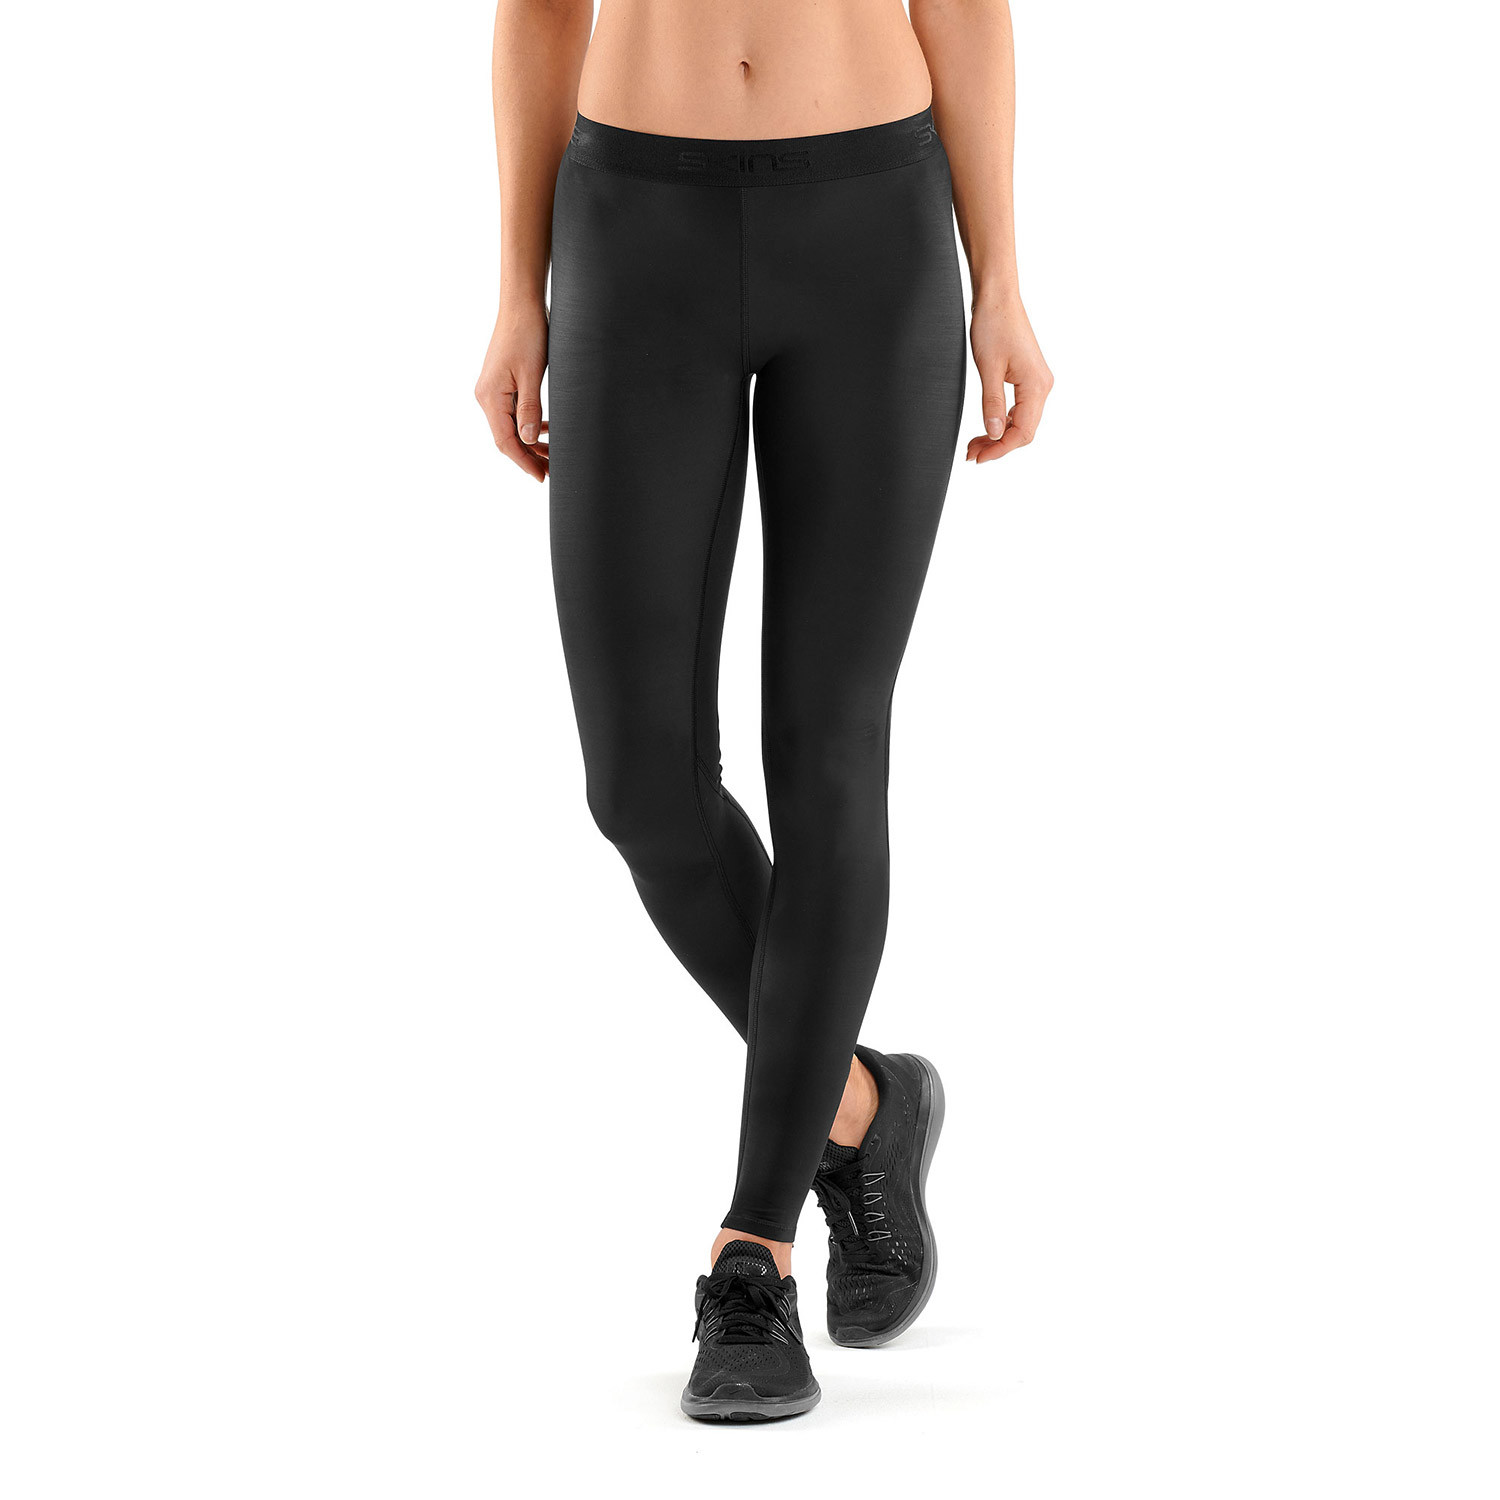 0d11e47ee0 SKINS DNAmic Womens Long Tights Black/Black (X-Small) - CLEARANCE ...